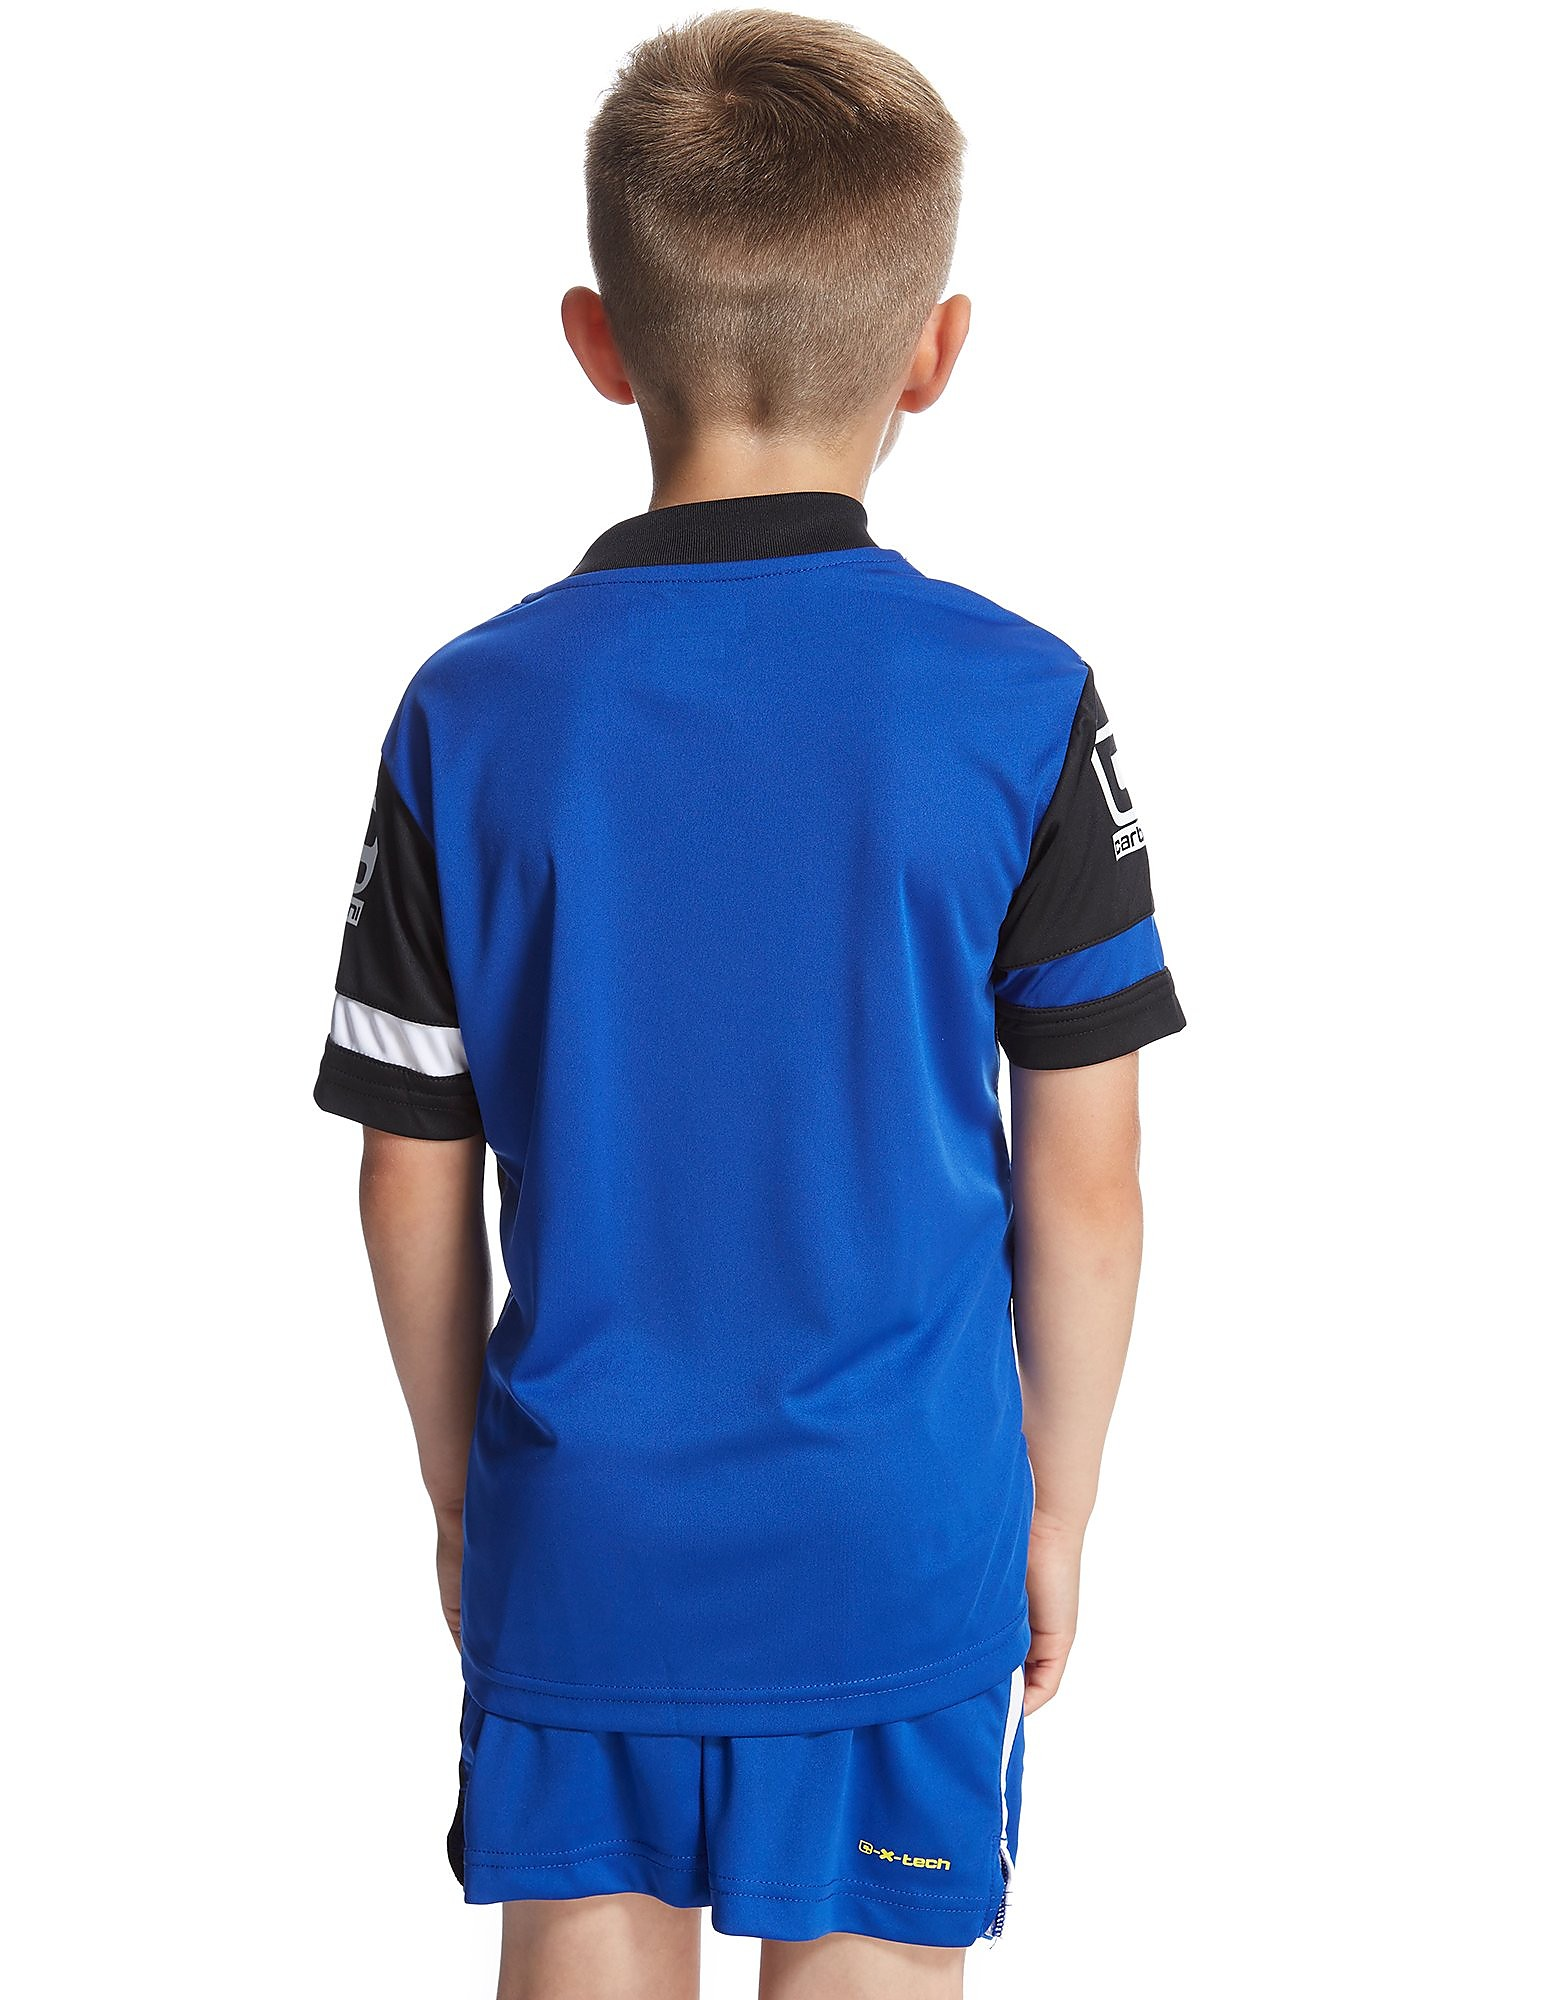 Carbrini Stevenage FC Away 2015 Kit Children